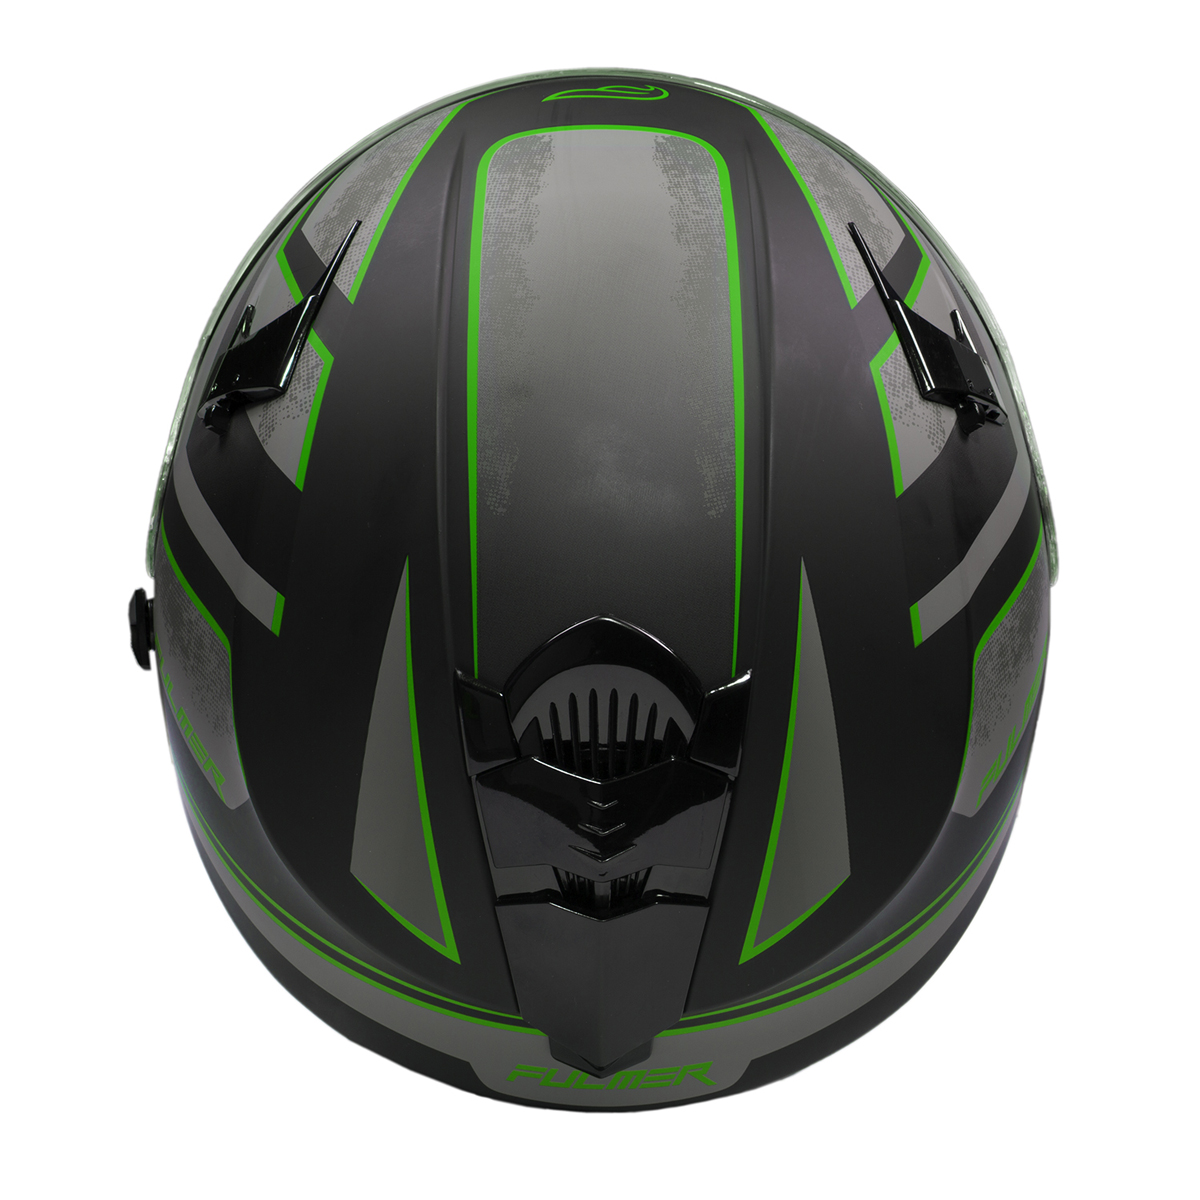 Fulmer-Adult-Full-Face-Motorcycle-Helmet-151-Pulse-DOT-Approved-Street-Bike thumbnail 15